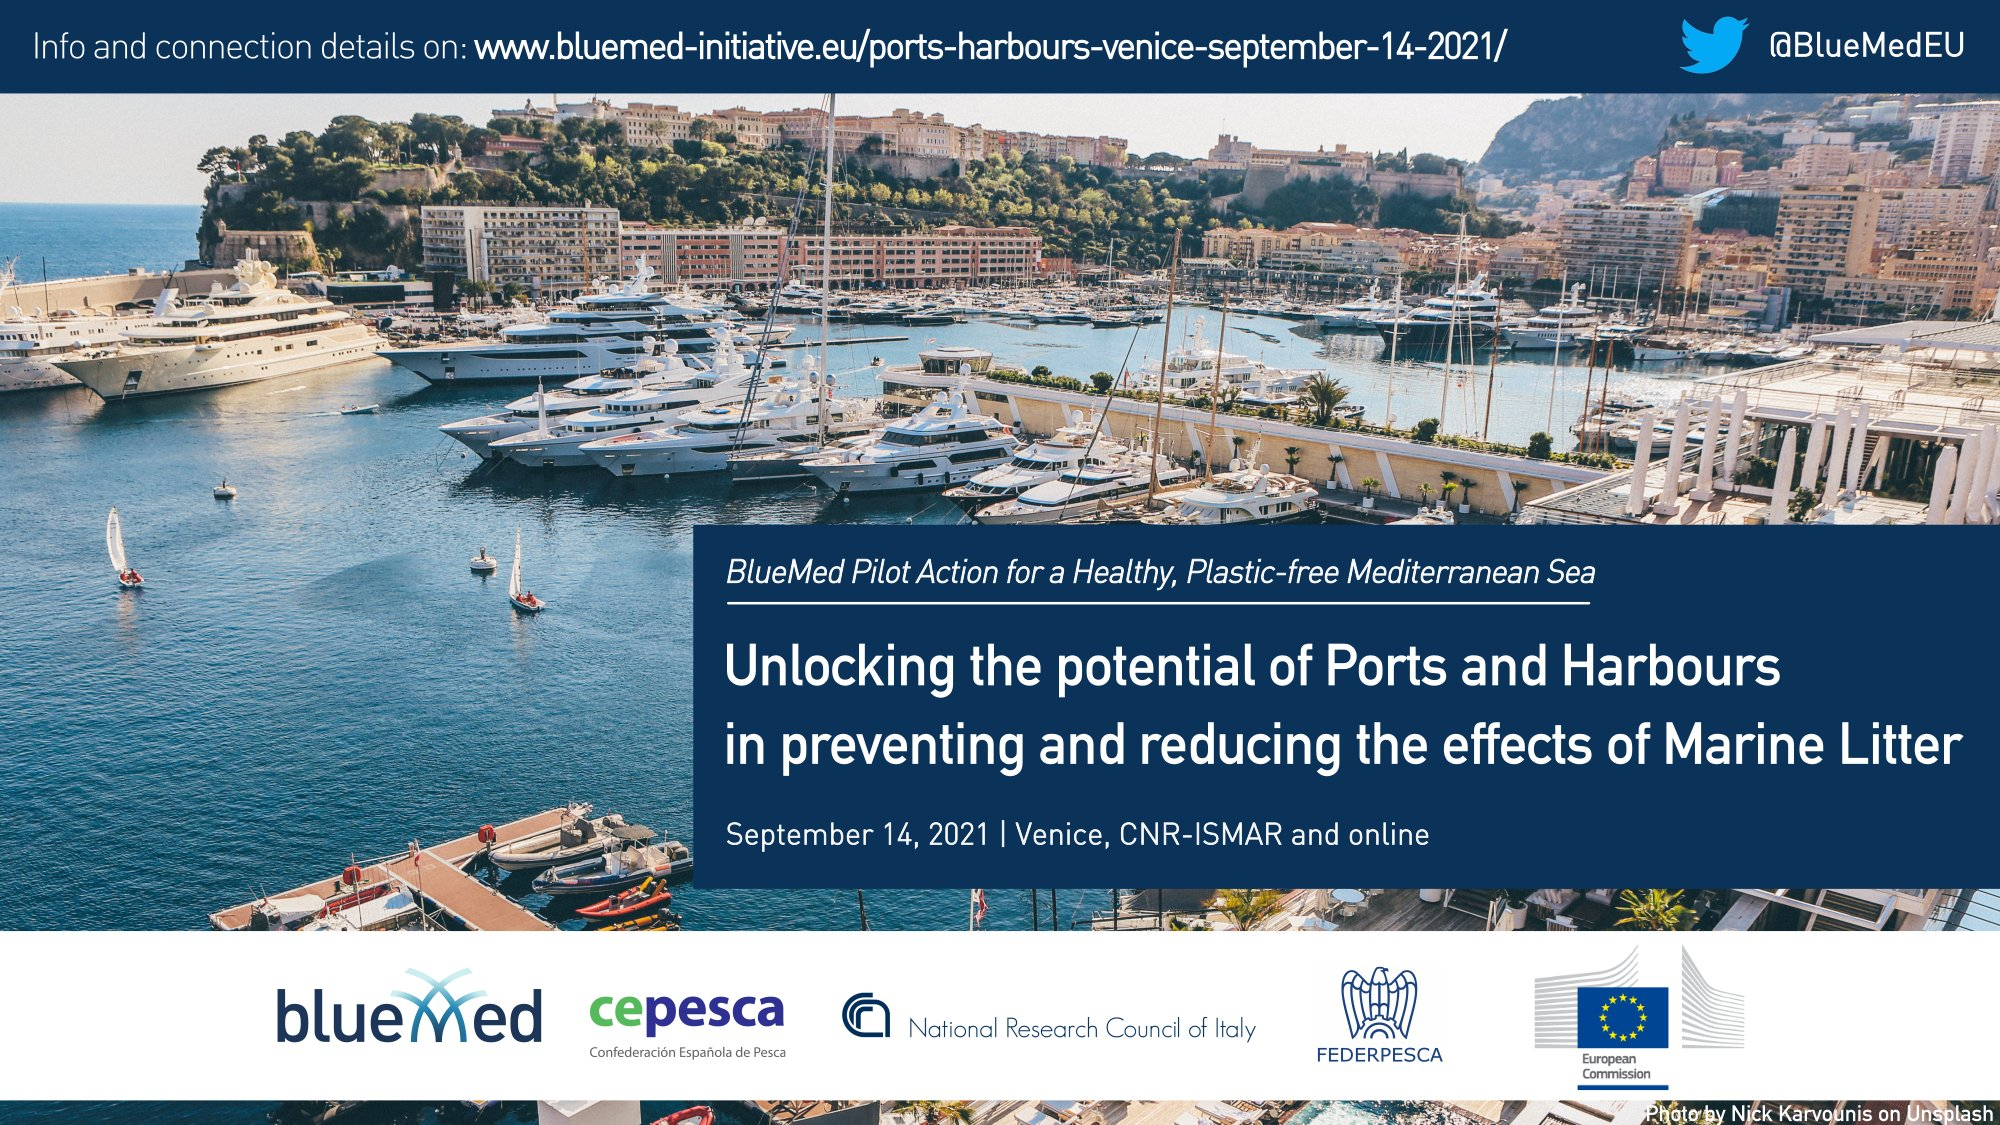 port with yachts - event announcement